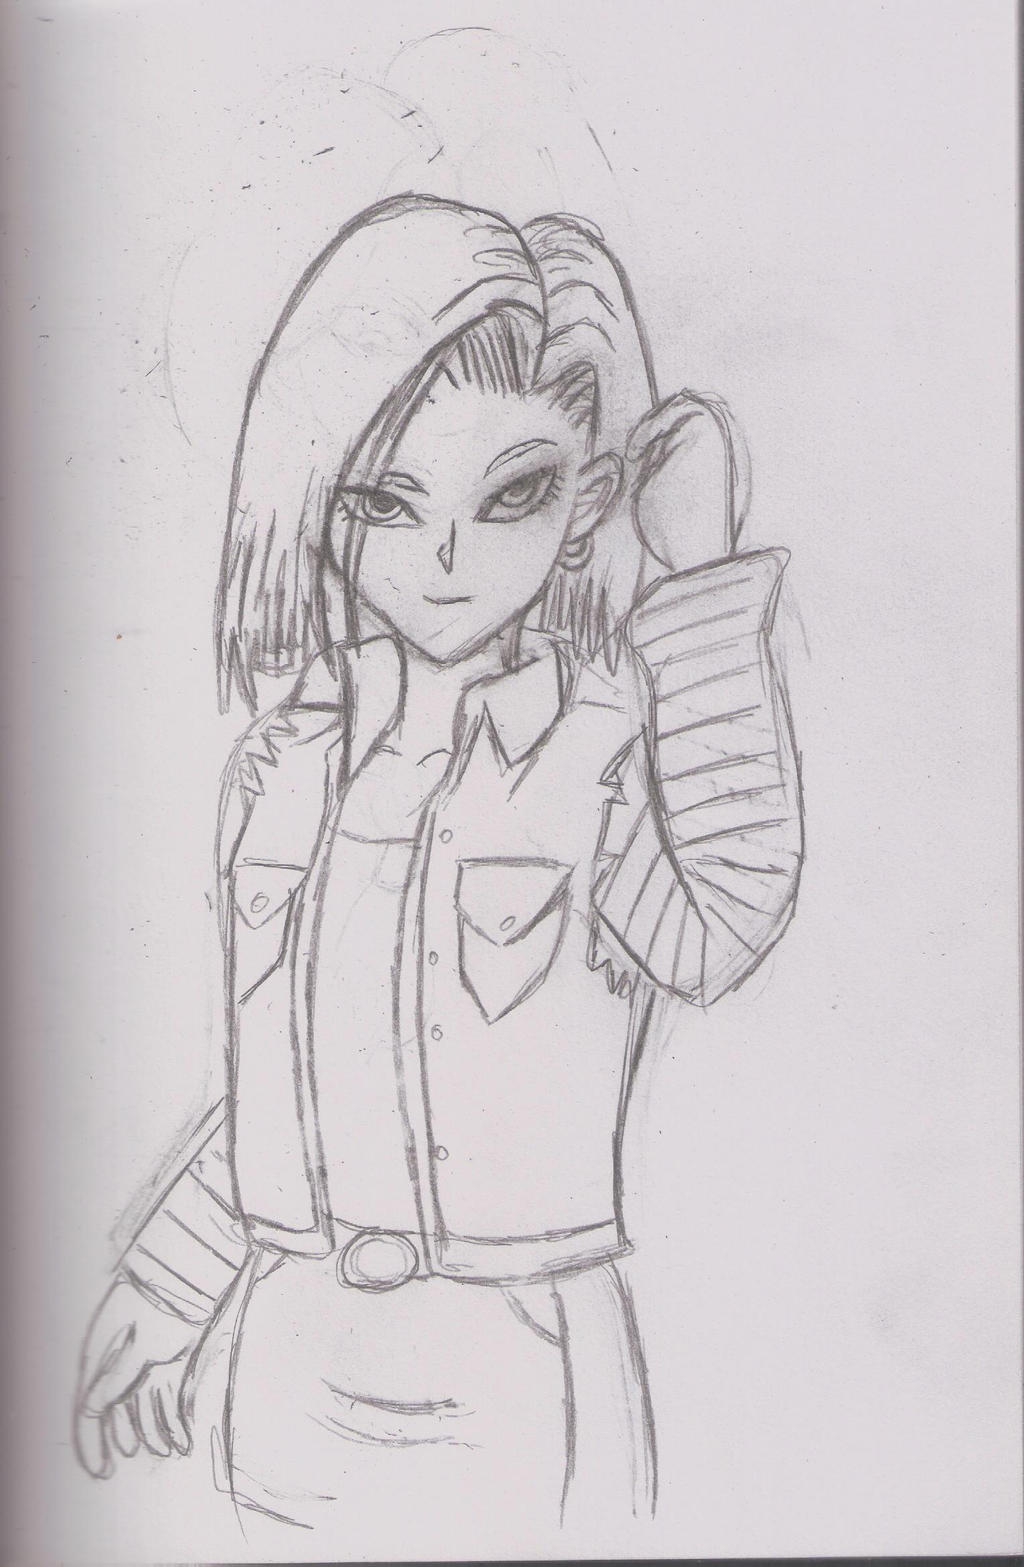 Android 18 by Autumn-Star-Dreamer